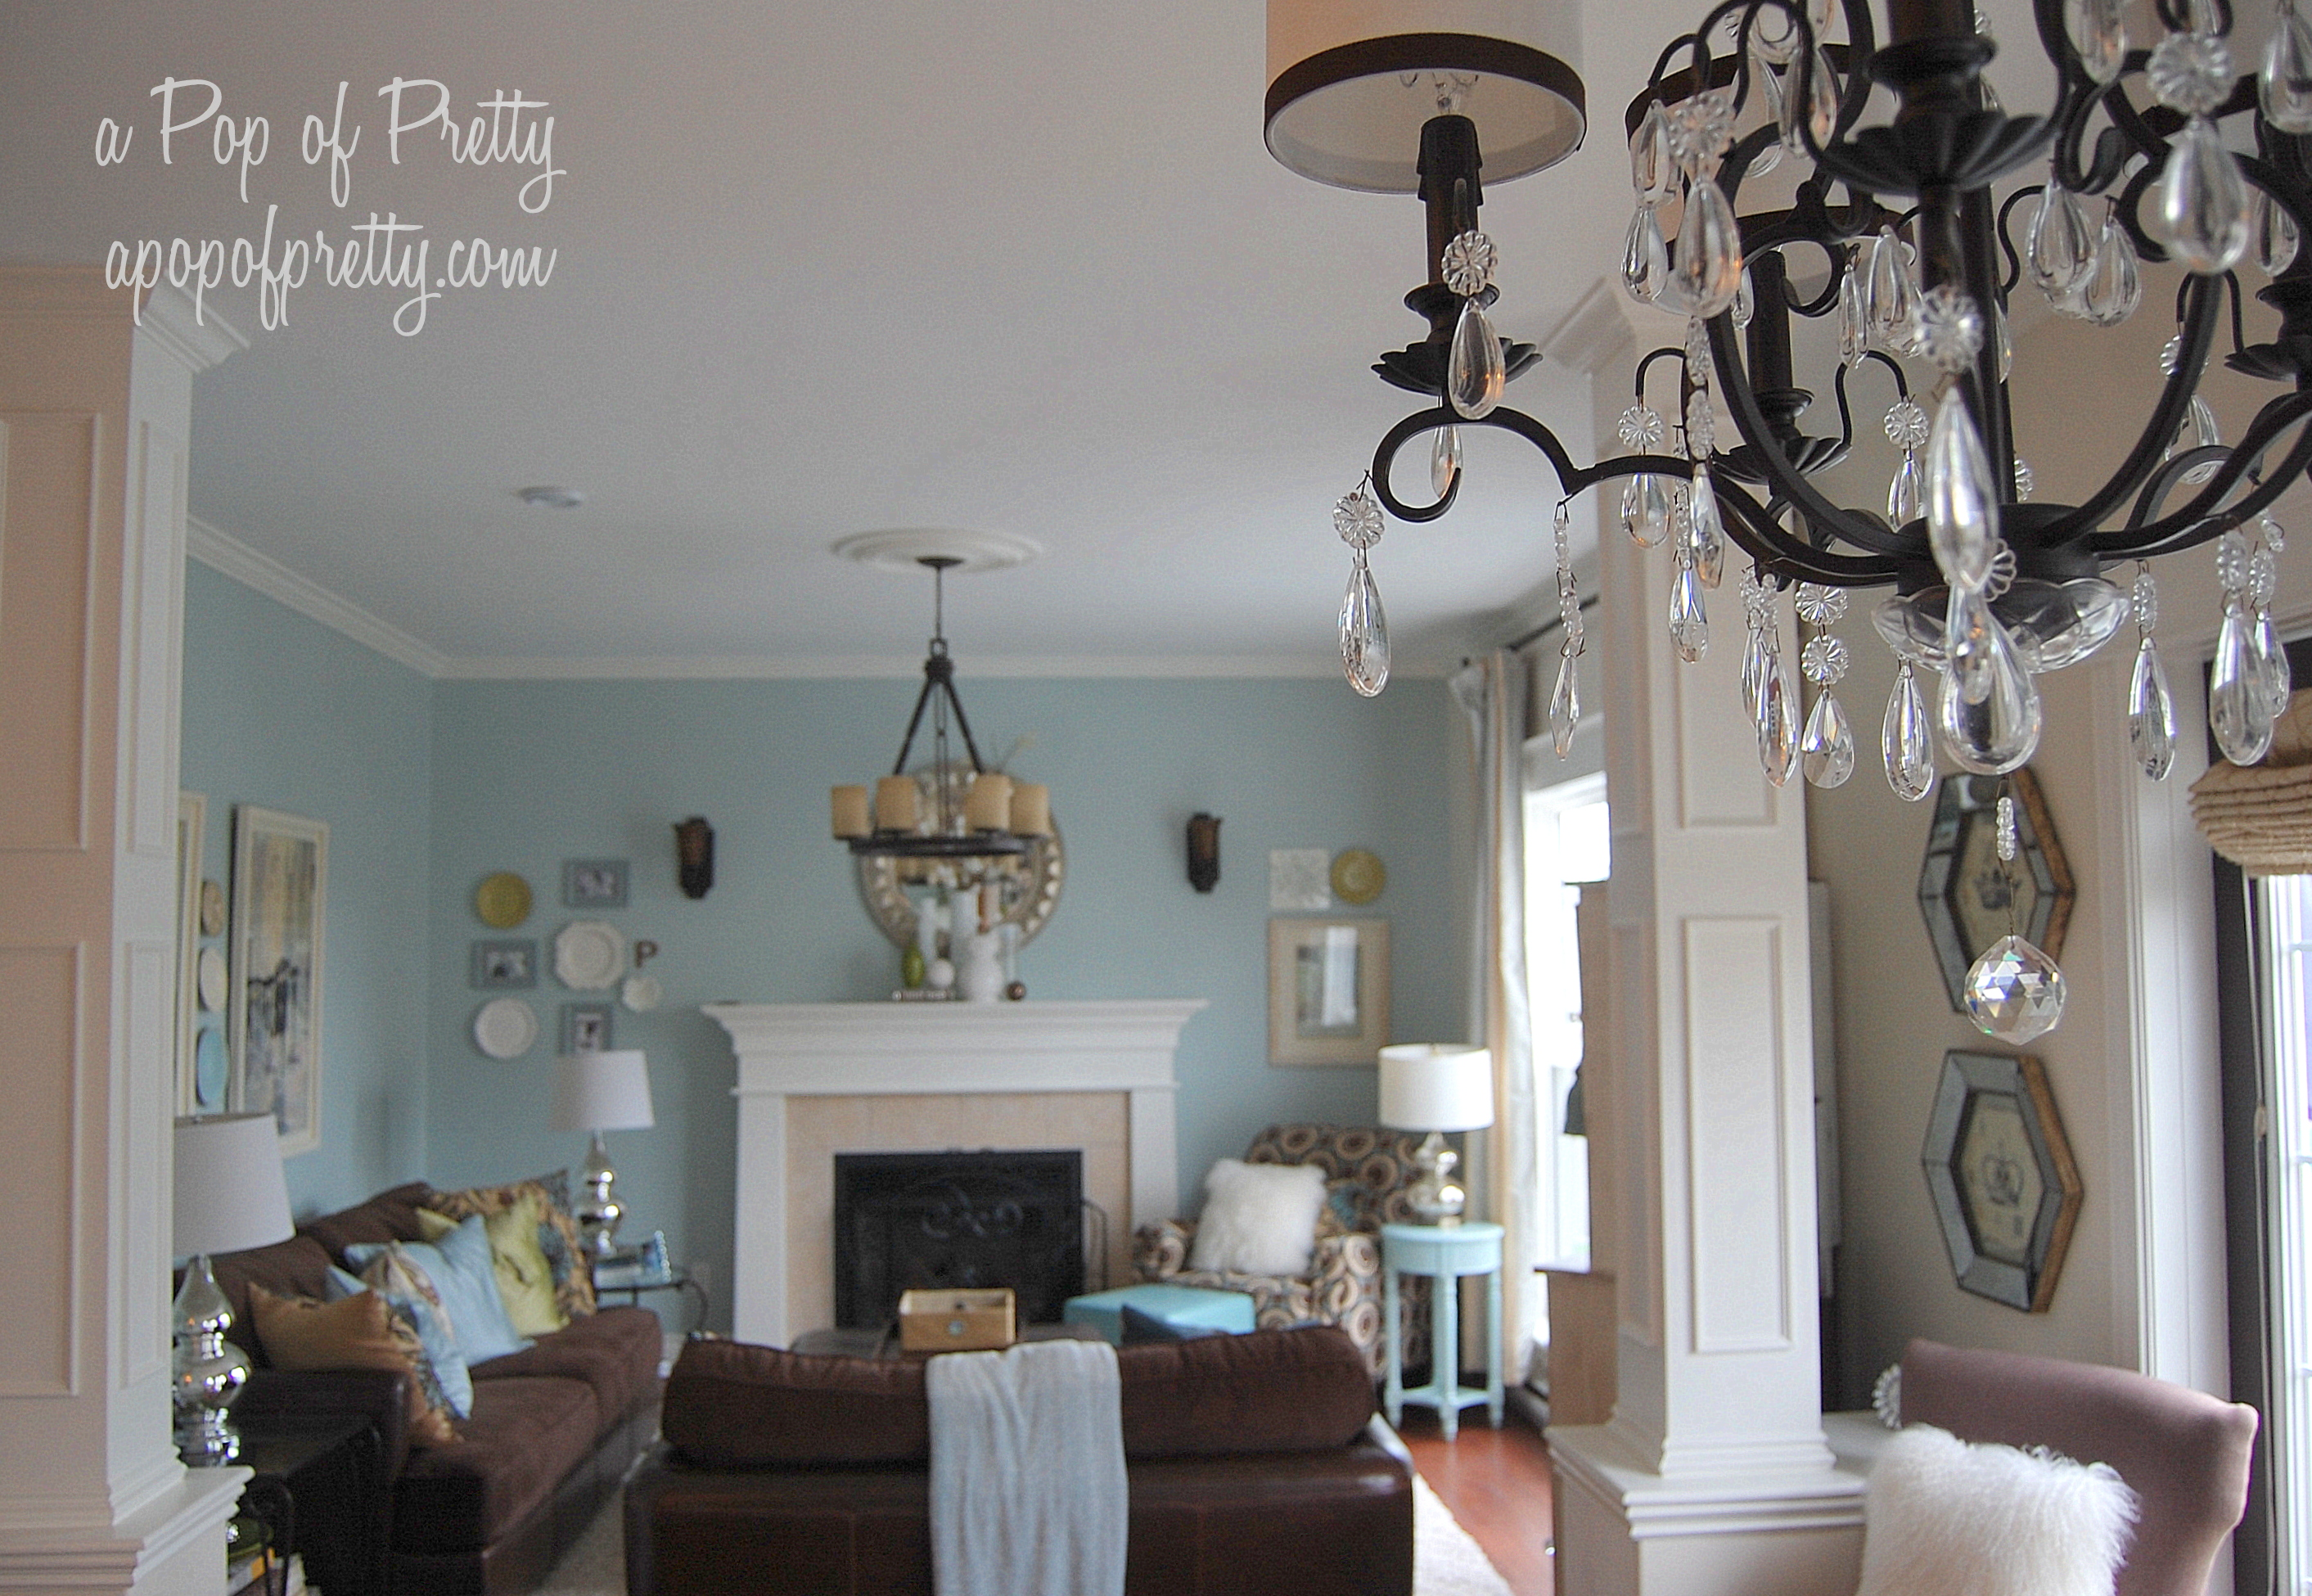 A Pop Of Pretty Blog (Canadian Home